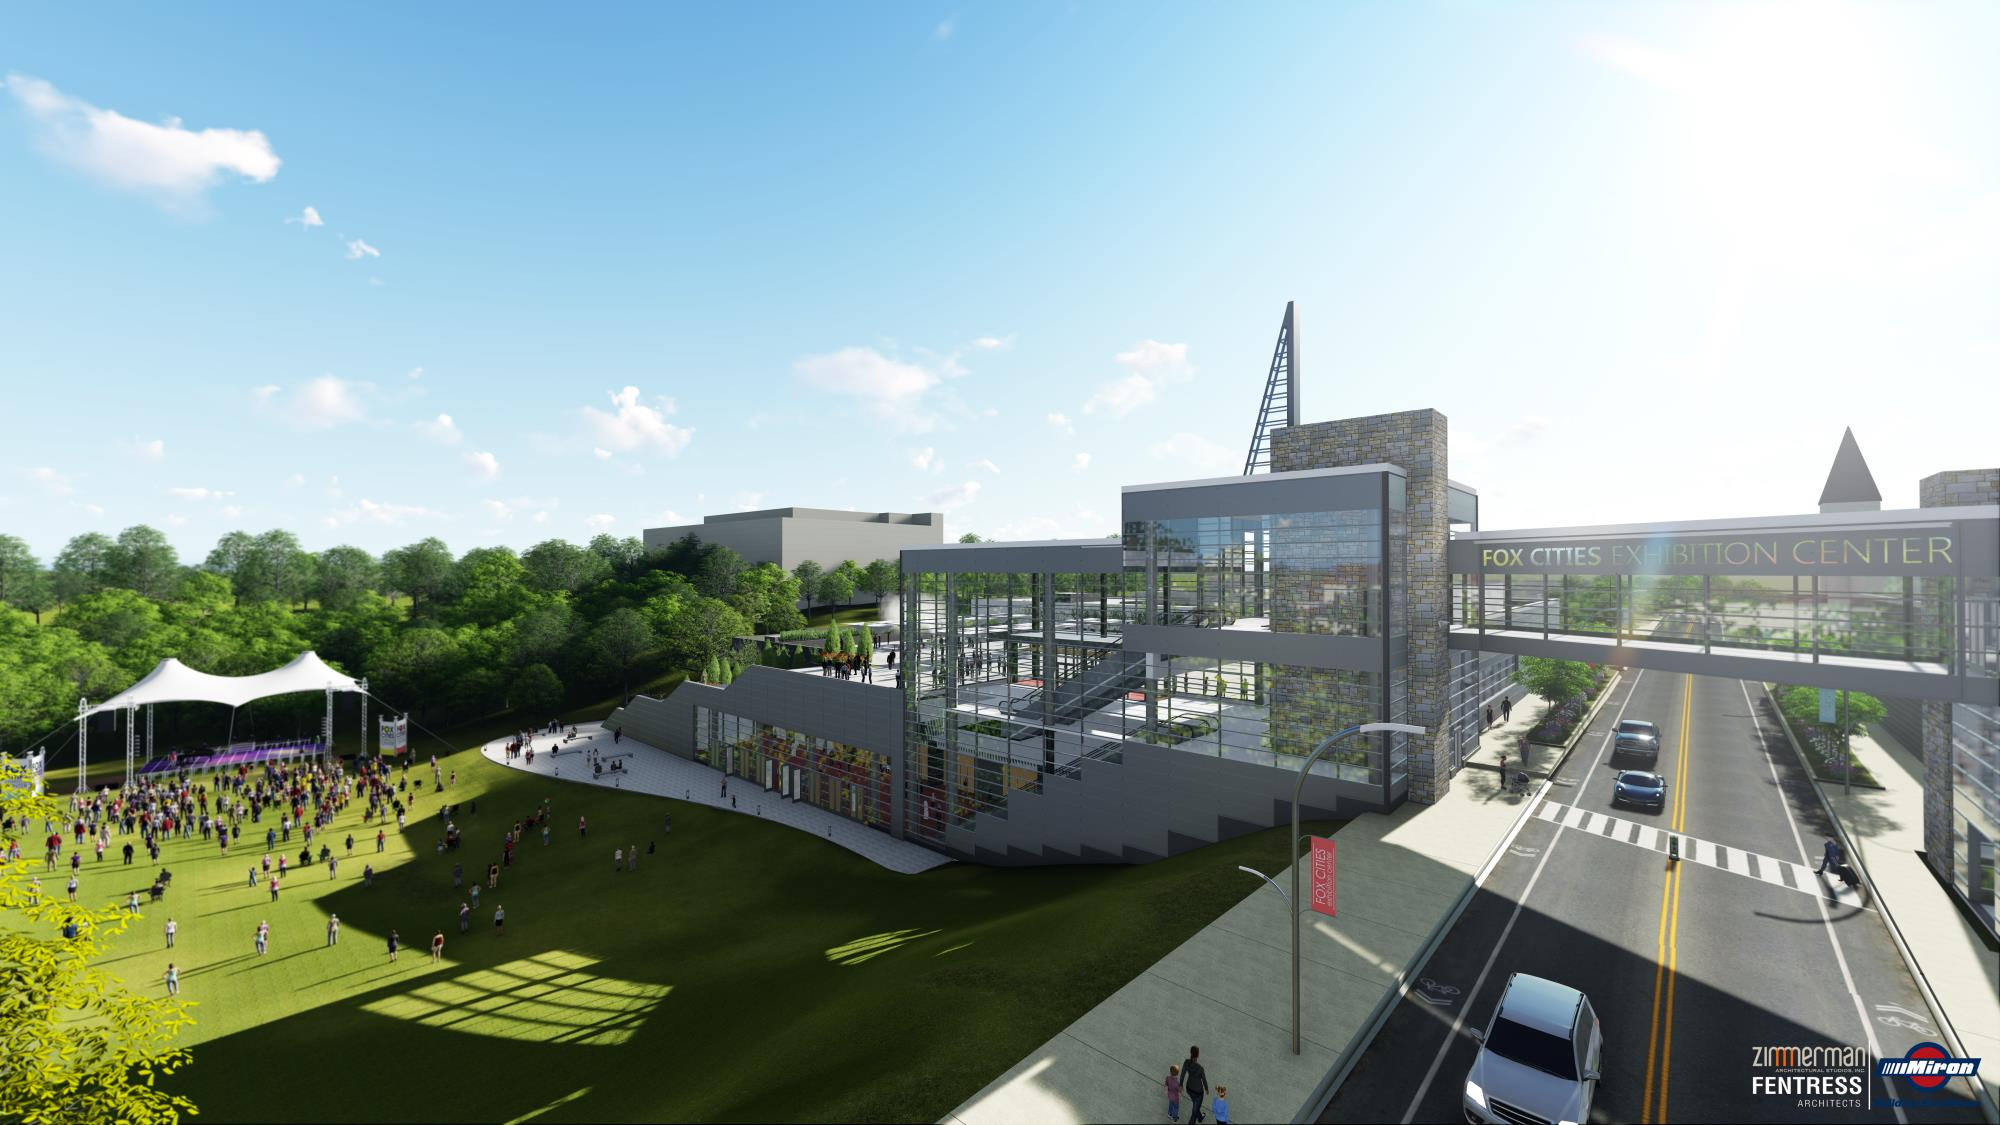 Iconic Fox Cities Exhibition Center design unveiled to the community